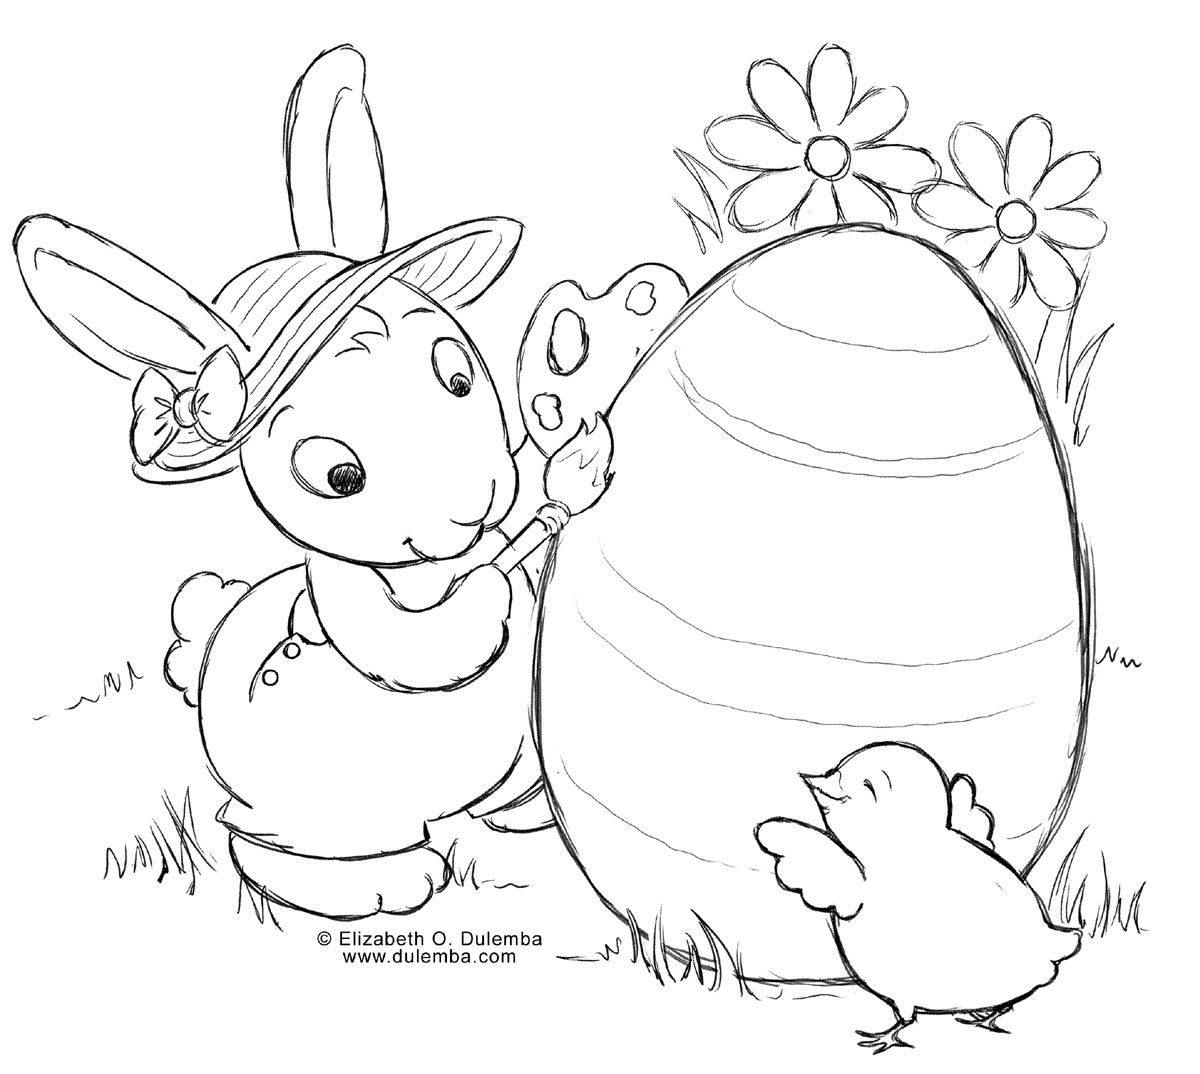 Paint pages to color online - Easter Coloring Printable Coloring Pages Sheets For Kids Get The Latest Free Easter Coloring Images Favorite Coloring Pages To Print Online